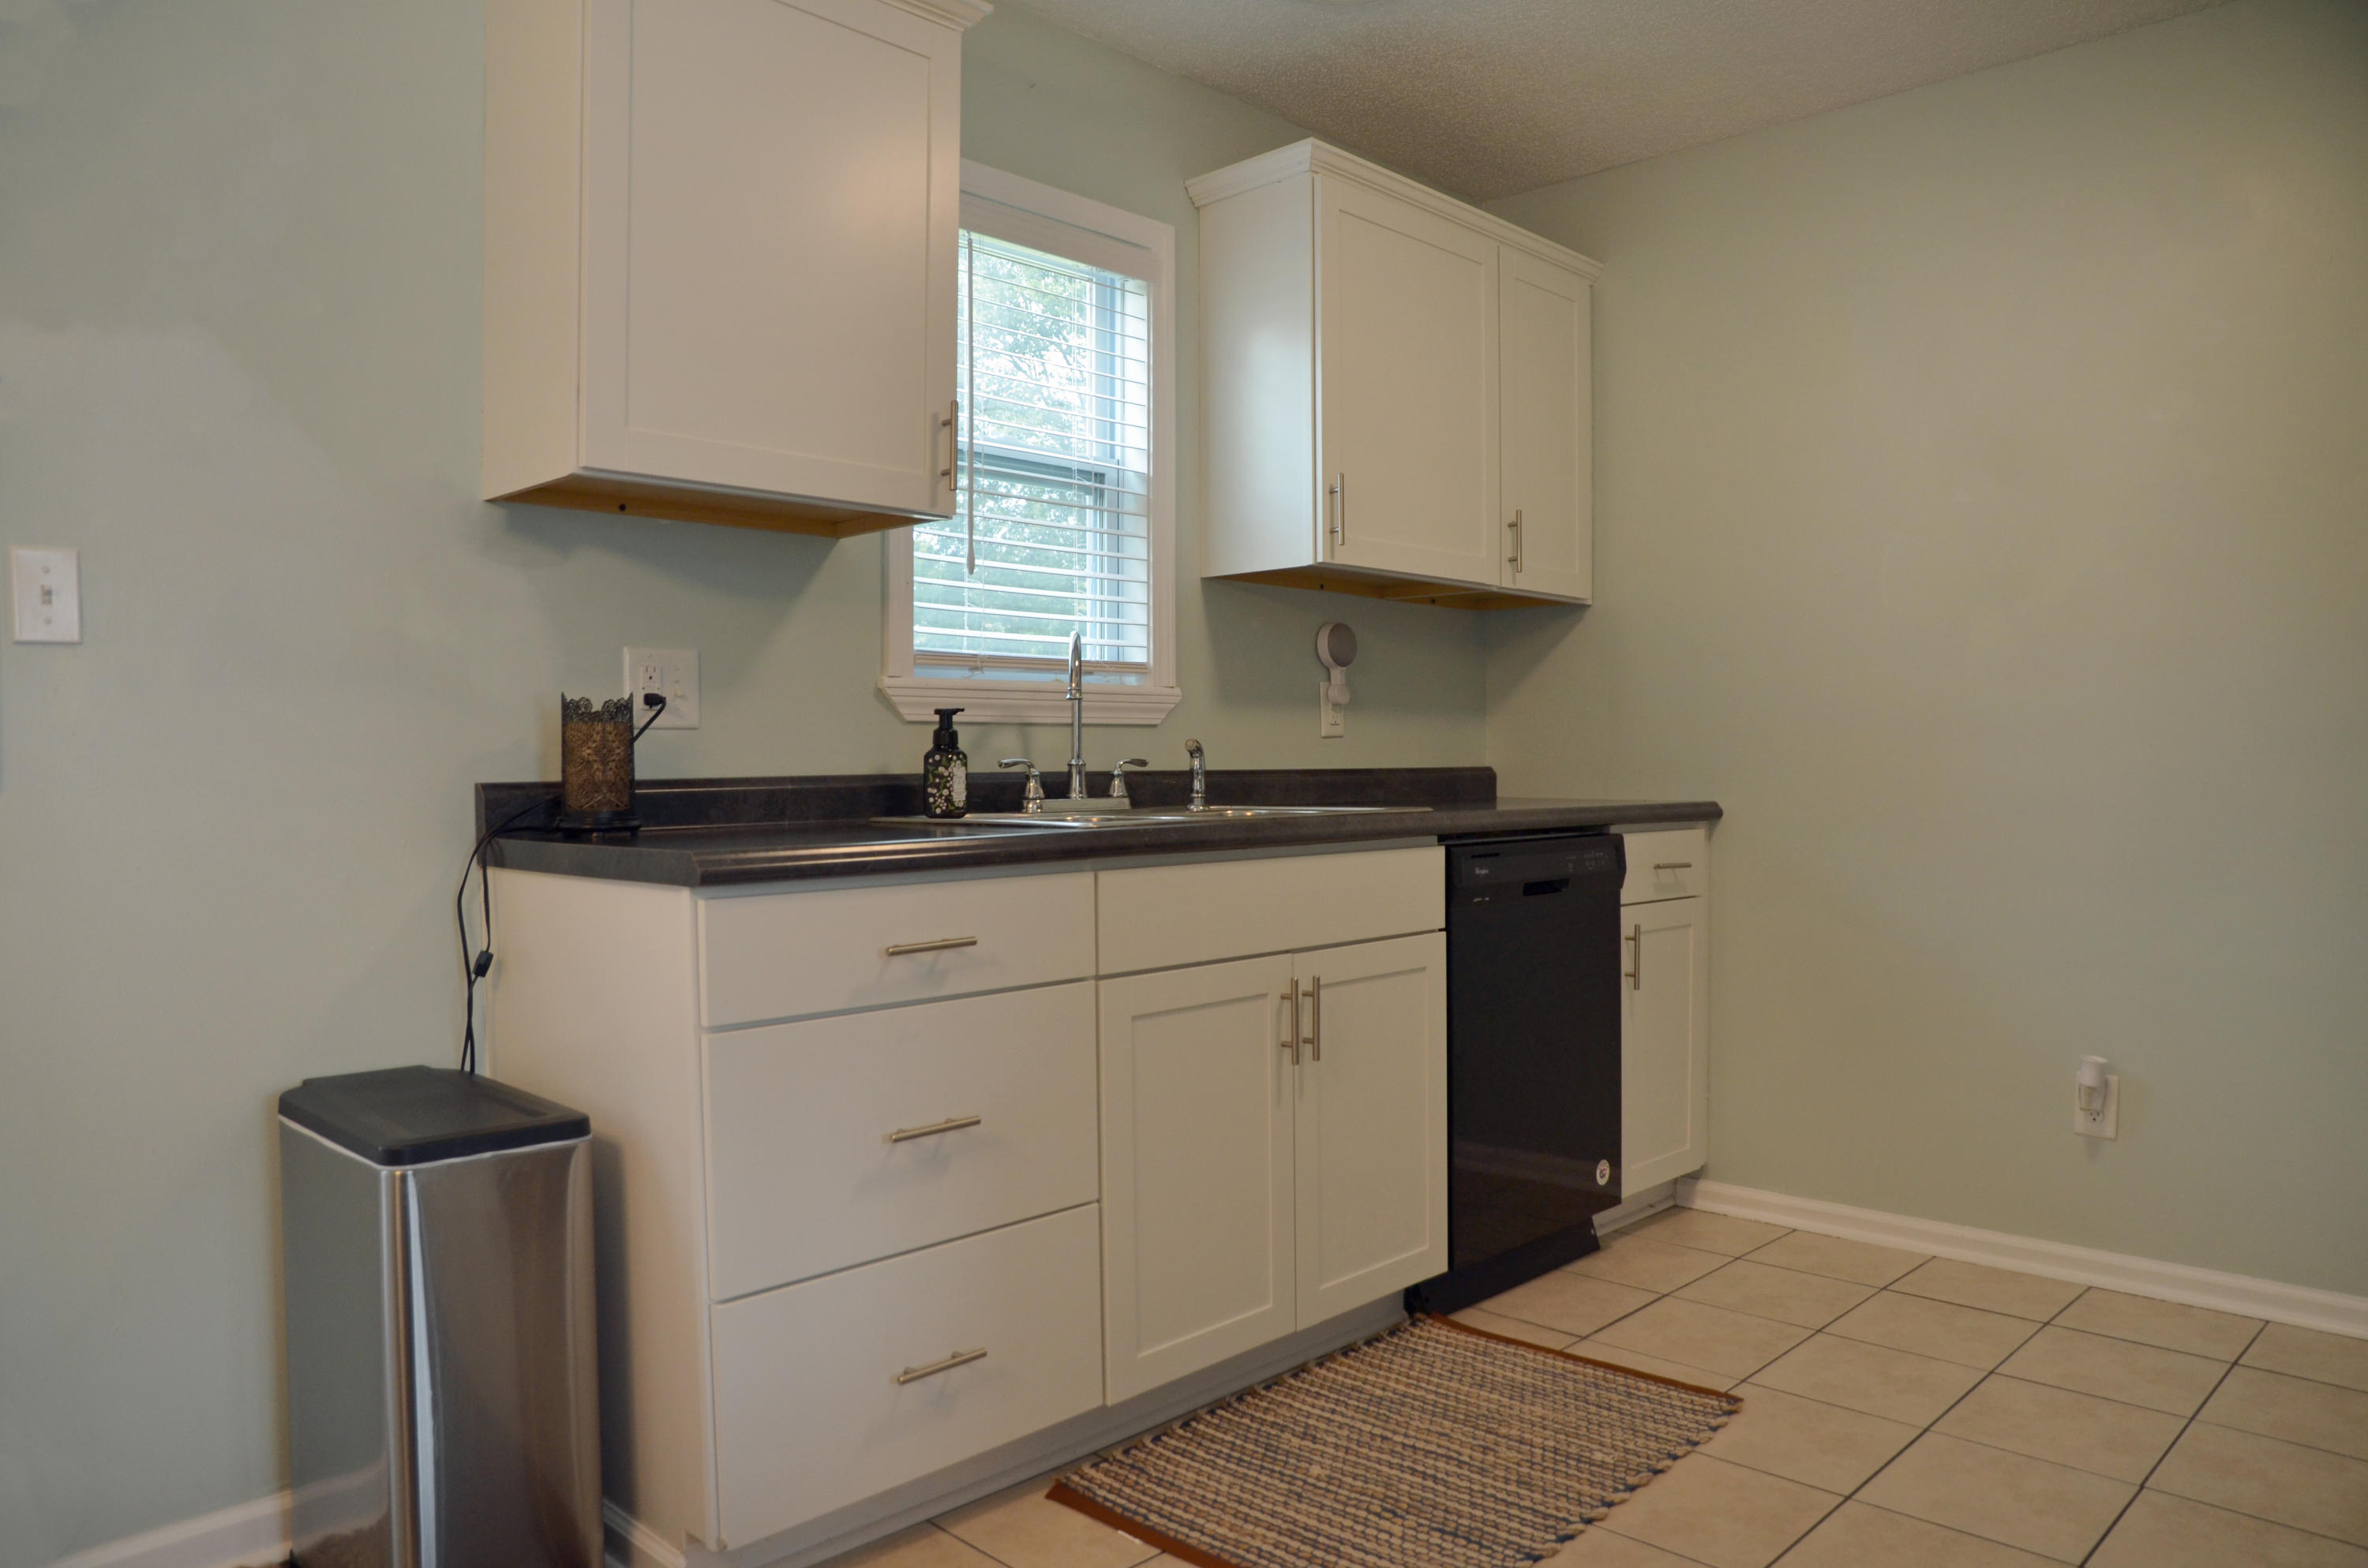 1821 Longcress Drive, Knoxville, Tennessee 37918, 3 Bedrooms Bedrooms, ,2 BathroomsBathrooms,Single Family,For Sale,Longcress,1129894